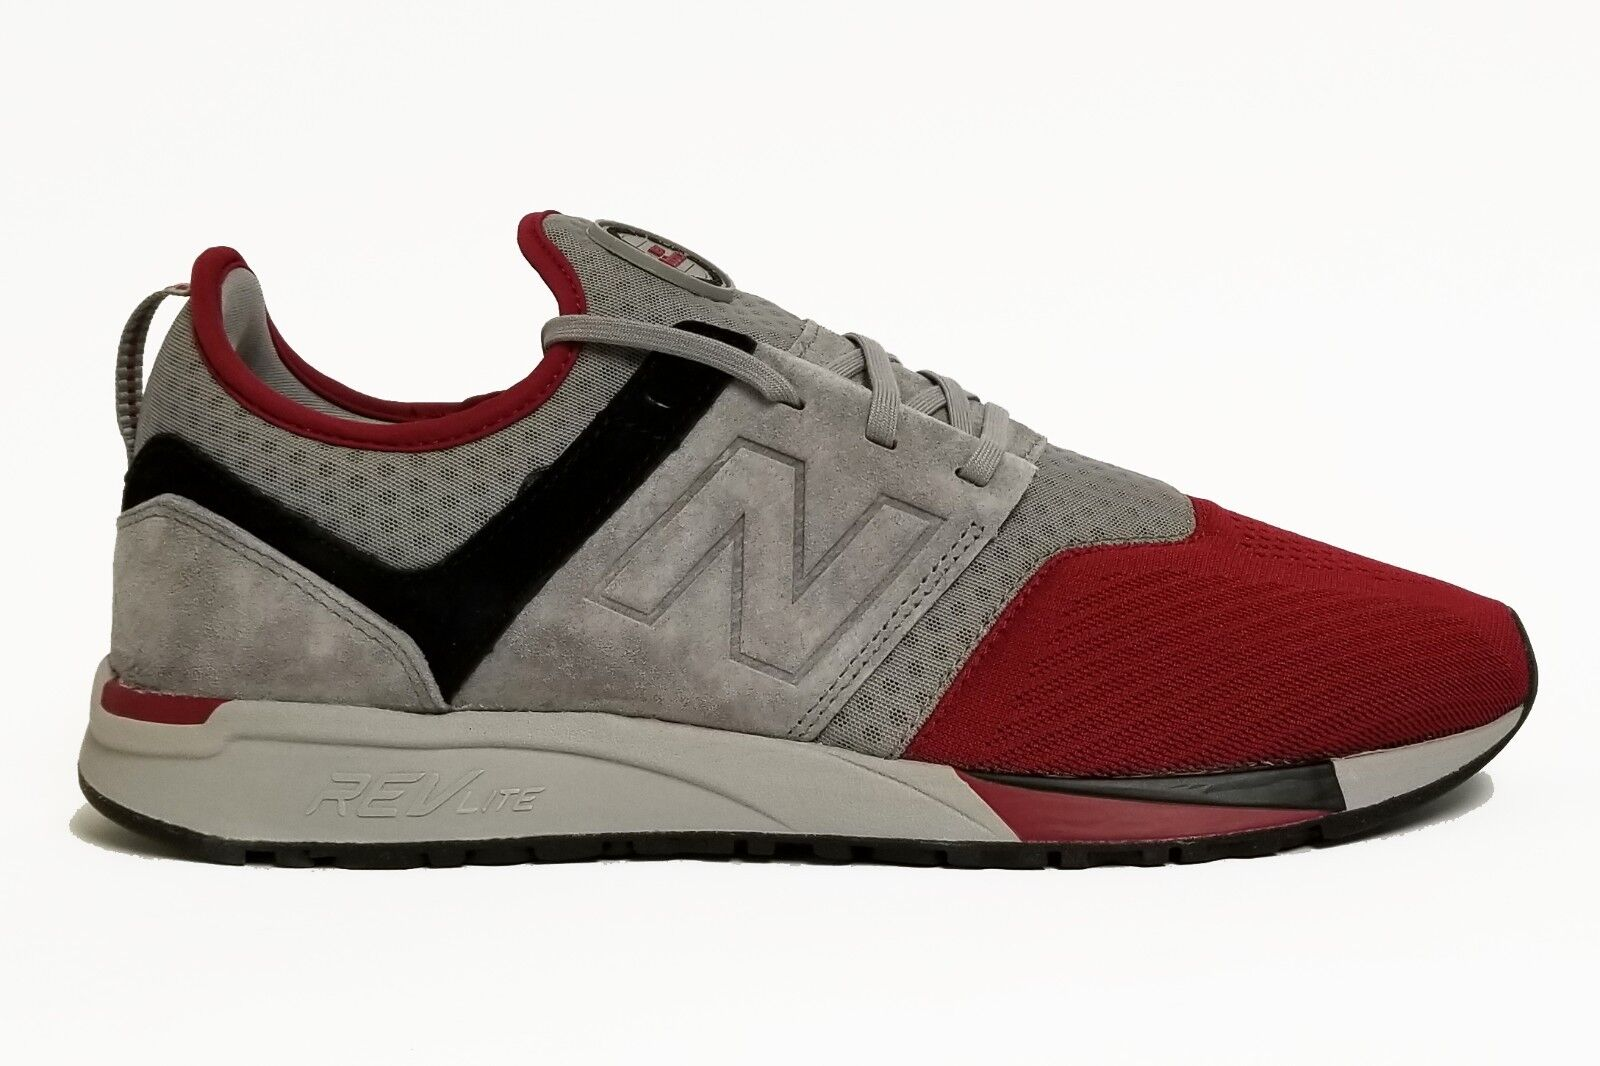 New Balance Men's 247 CLASSIC shoes Grey Burgundy MRL247MD c